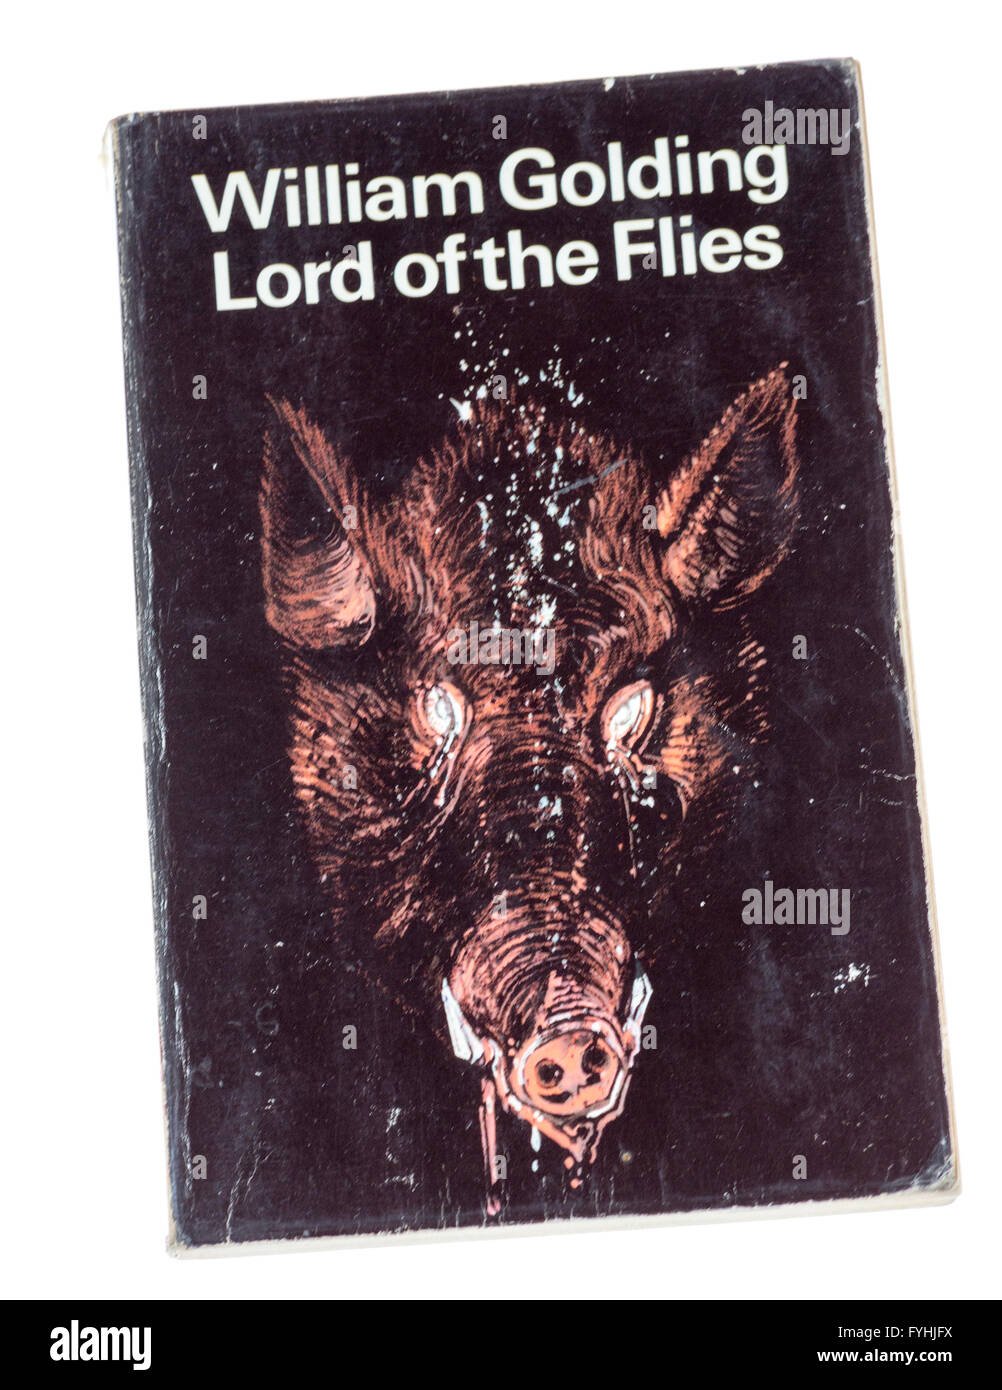 the lies in the novel lord of the flies by william golding A: william golding's novel lord of the flies has many examples of irony, several of which are rooted in statements the young boys make about order and cultu full answer  filed under.